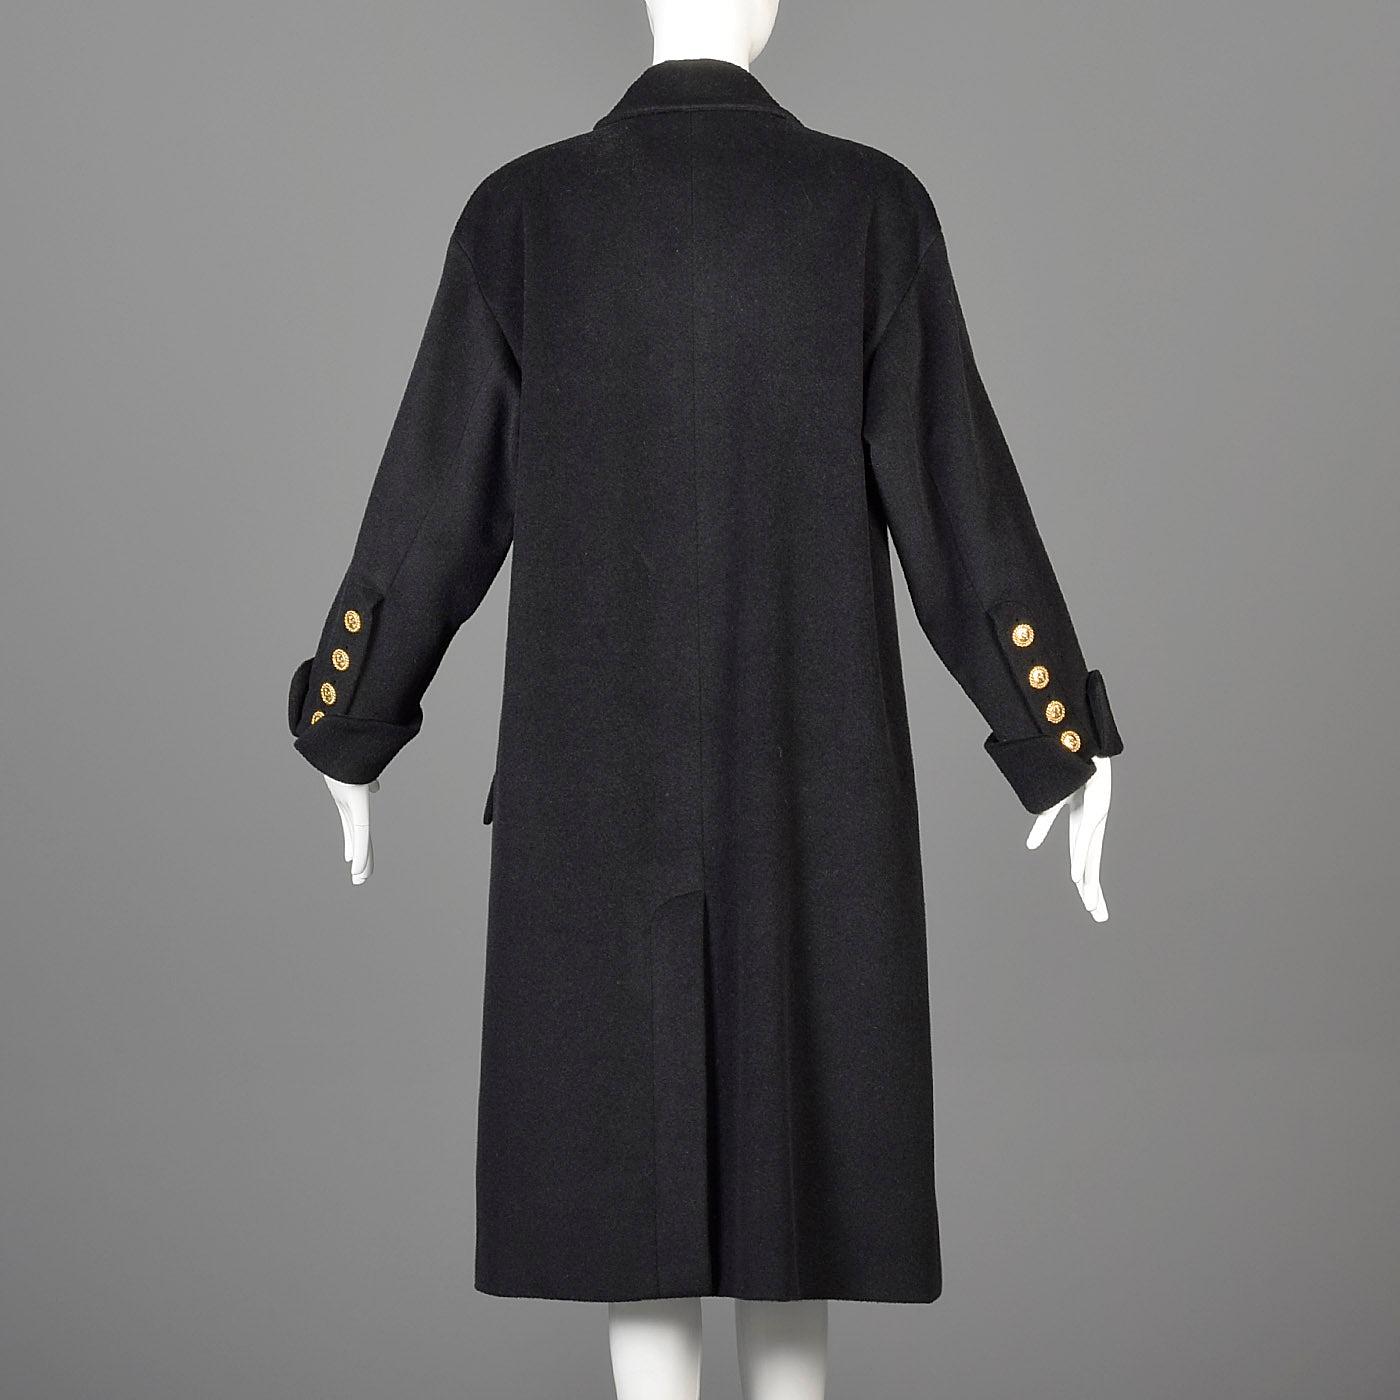 1980s Chanel Boutique Black Cashmere Coat with Gold Logo Gold Buttons